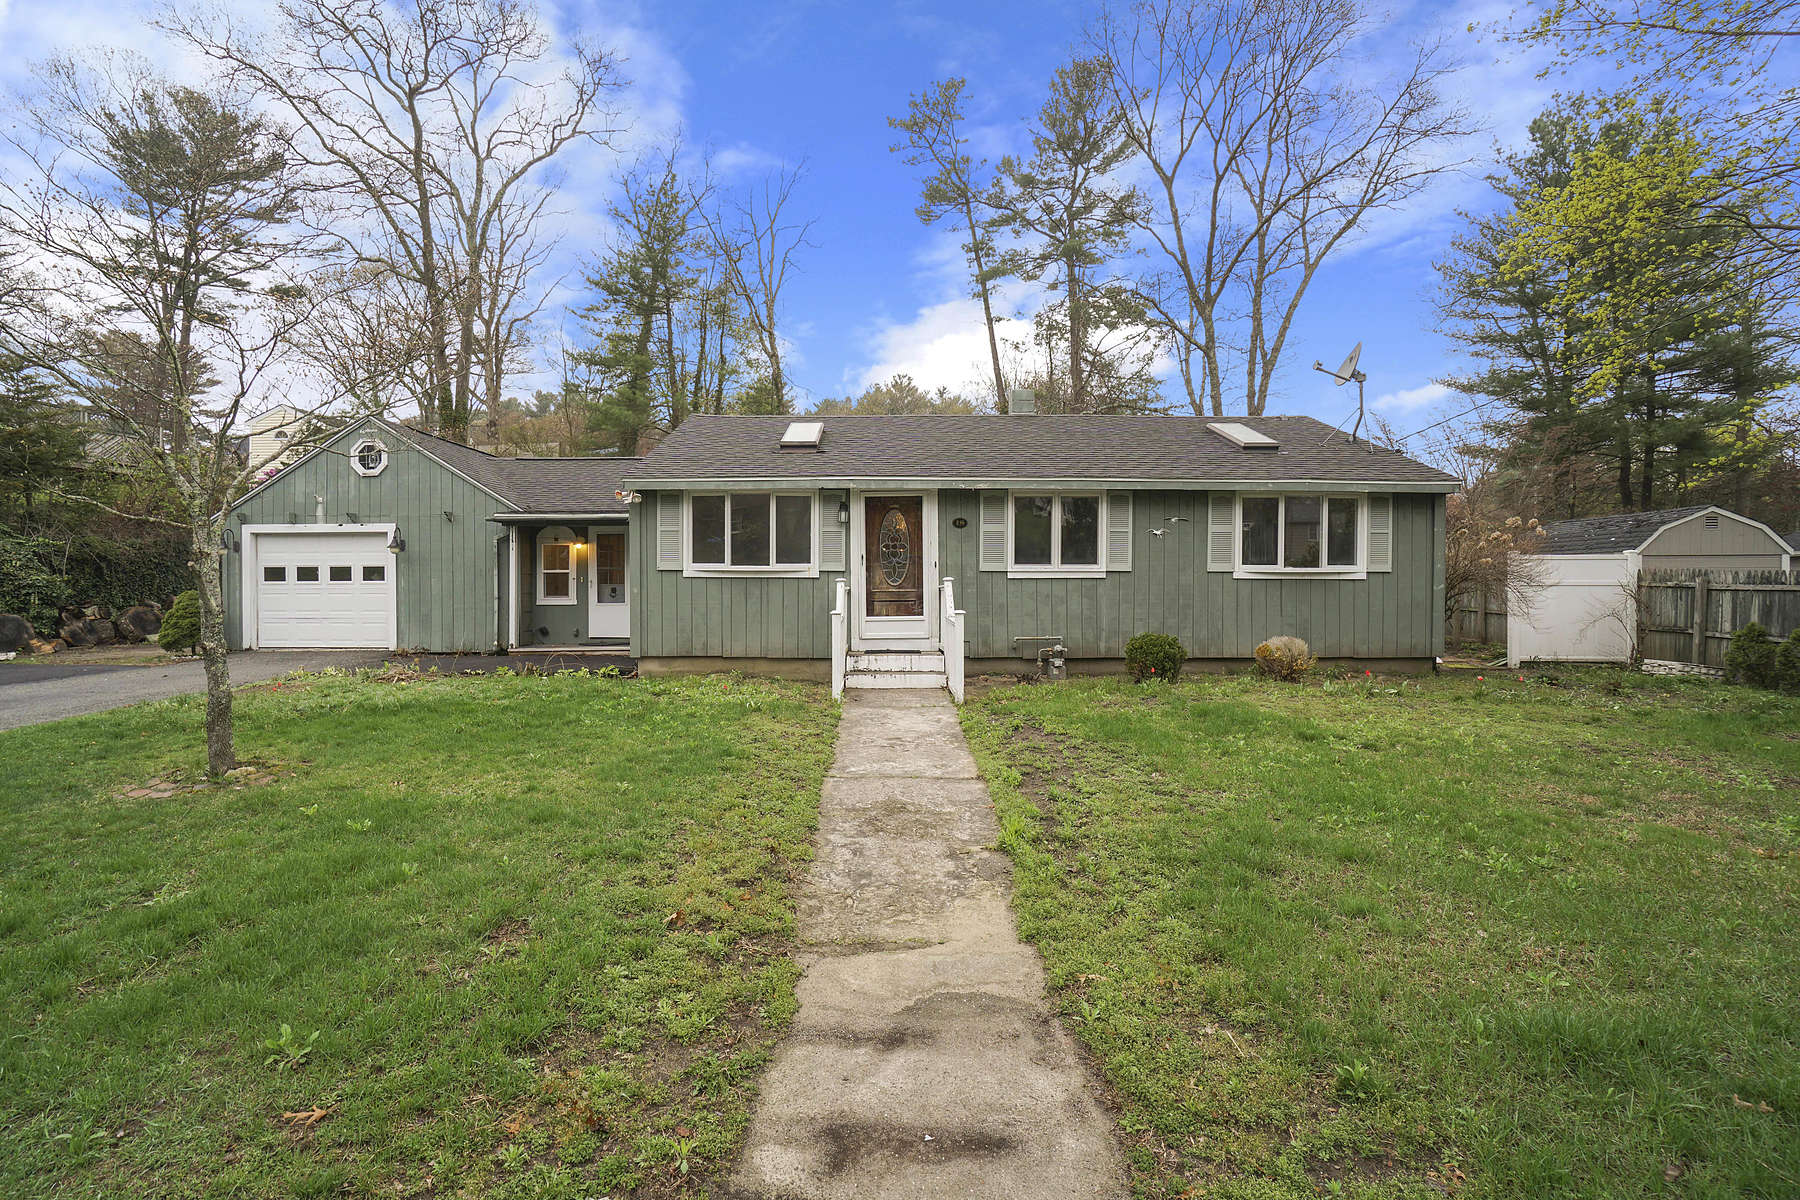 Single Family Home for Active at LIVE...Opportunity 18 Town Farm Road Pembroke, Massachusetts 02359 United States